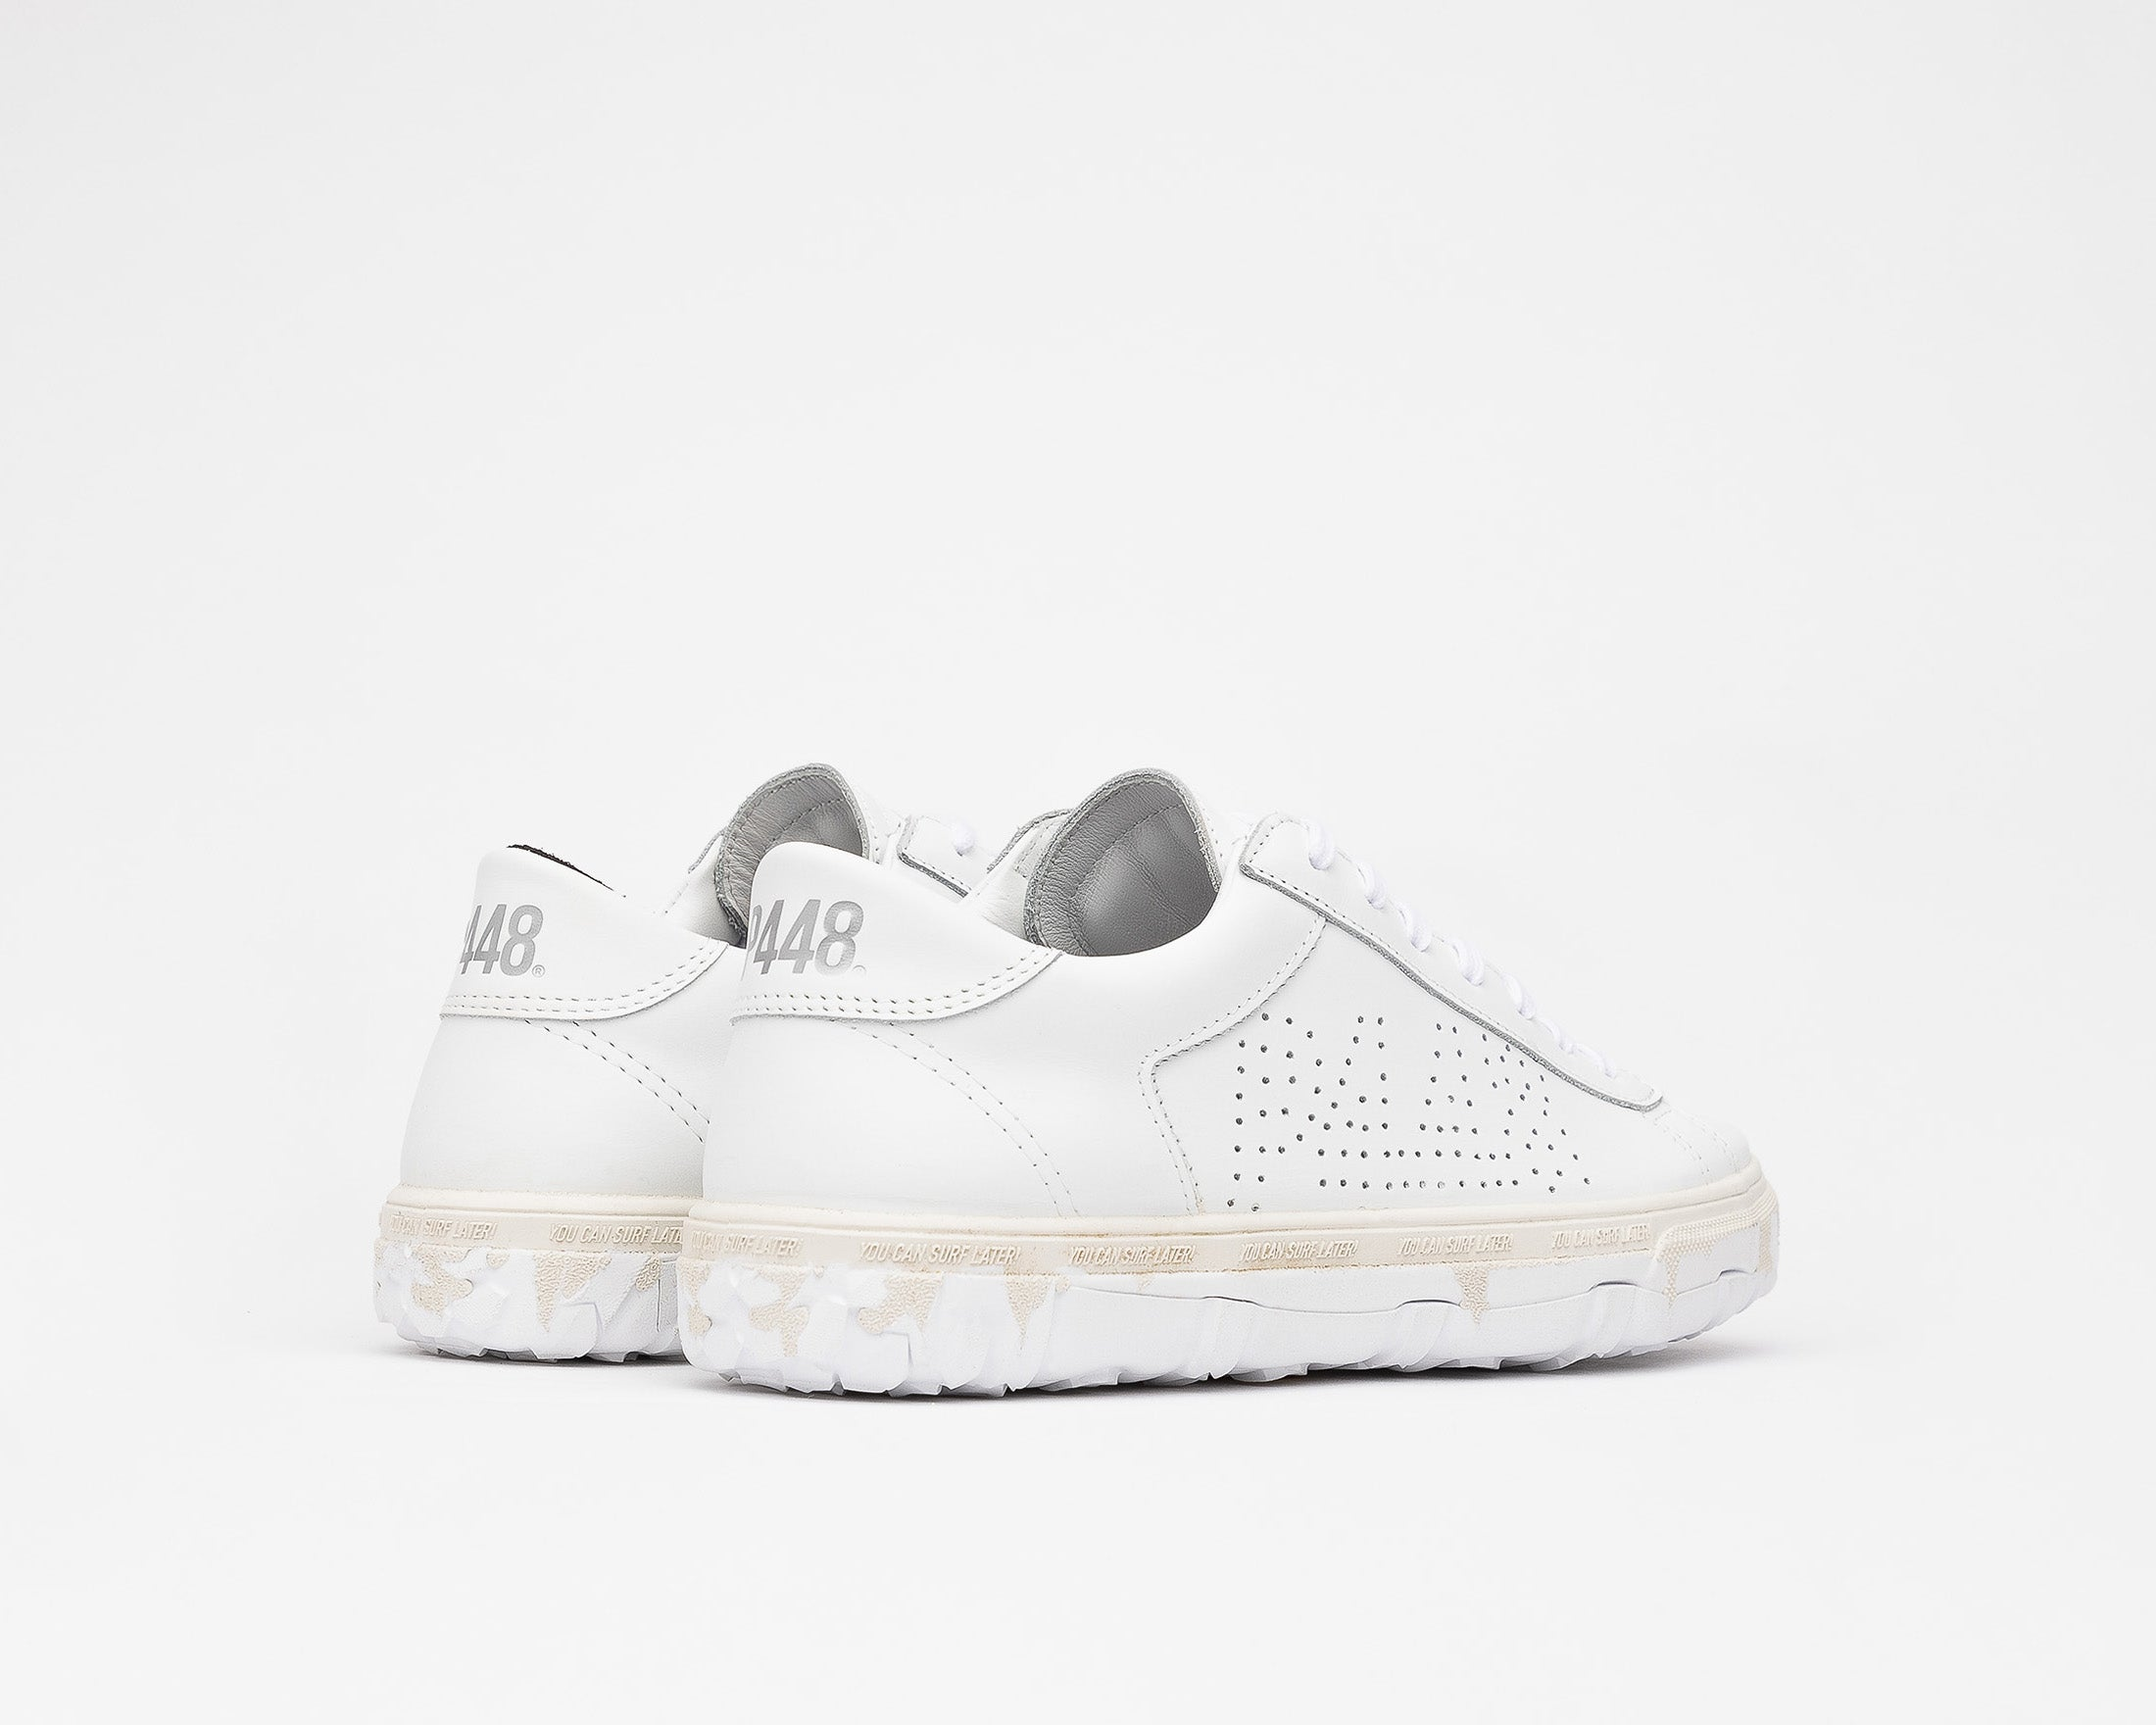 Y.C.S.L. Vibram Low-Top Sneaker in White/White - Back